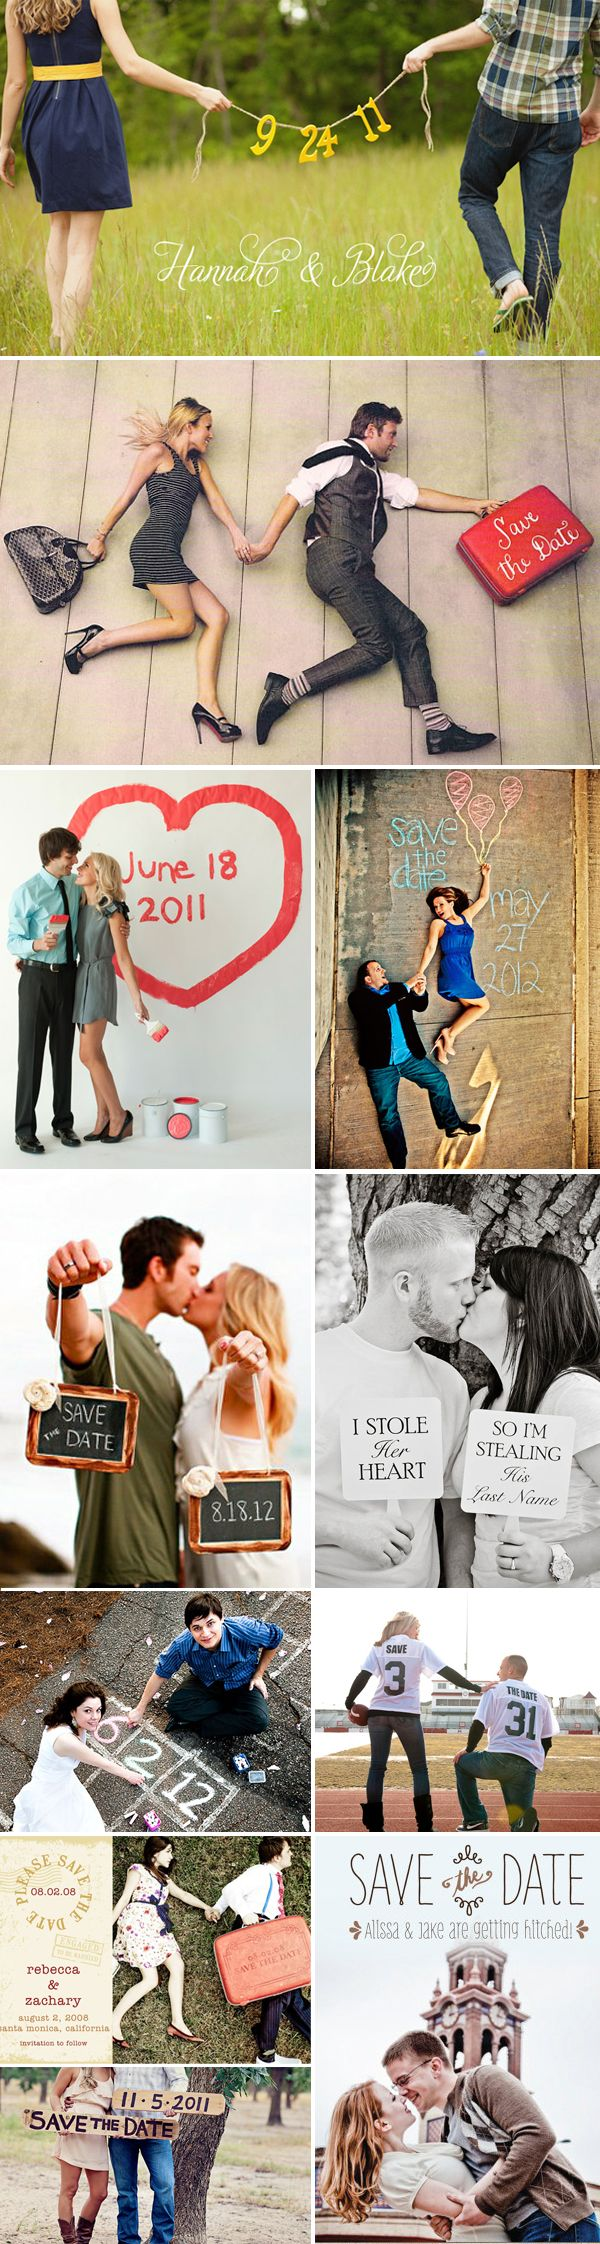 58 save the date ideas! Why are other couples so cute? Haha.